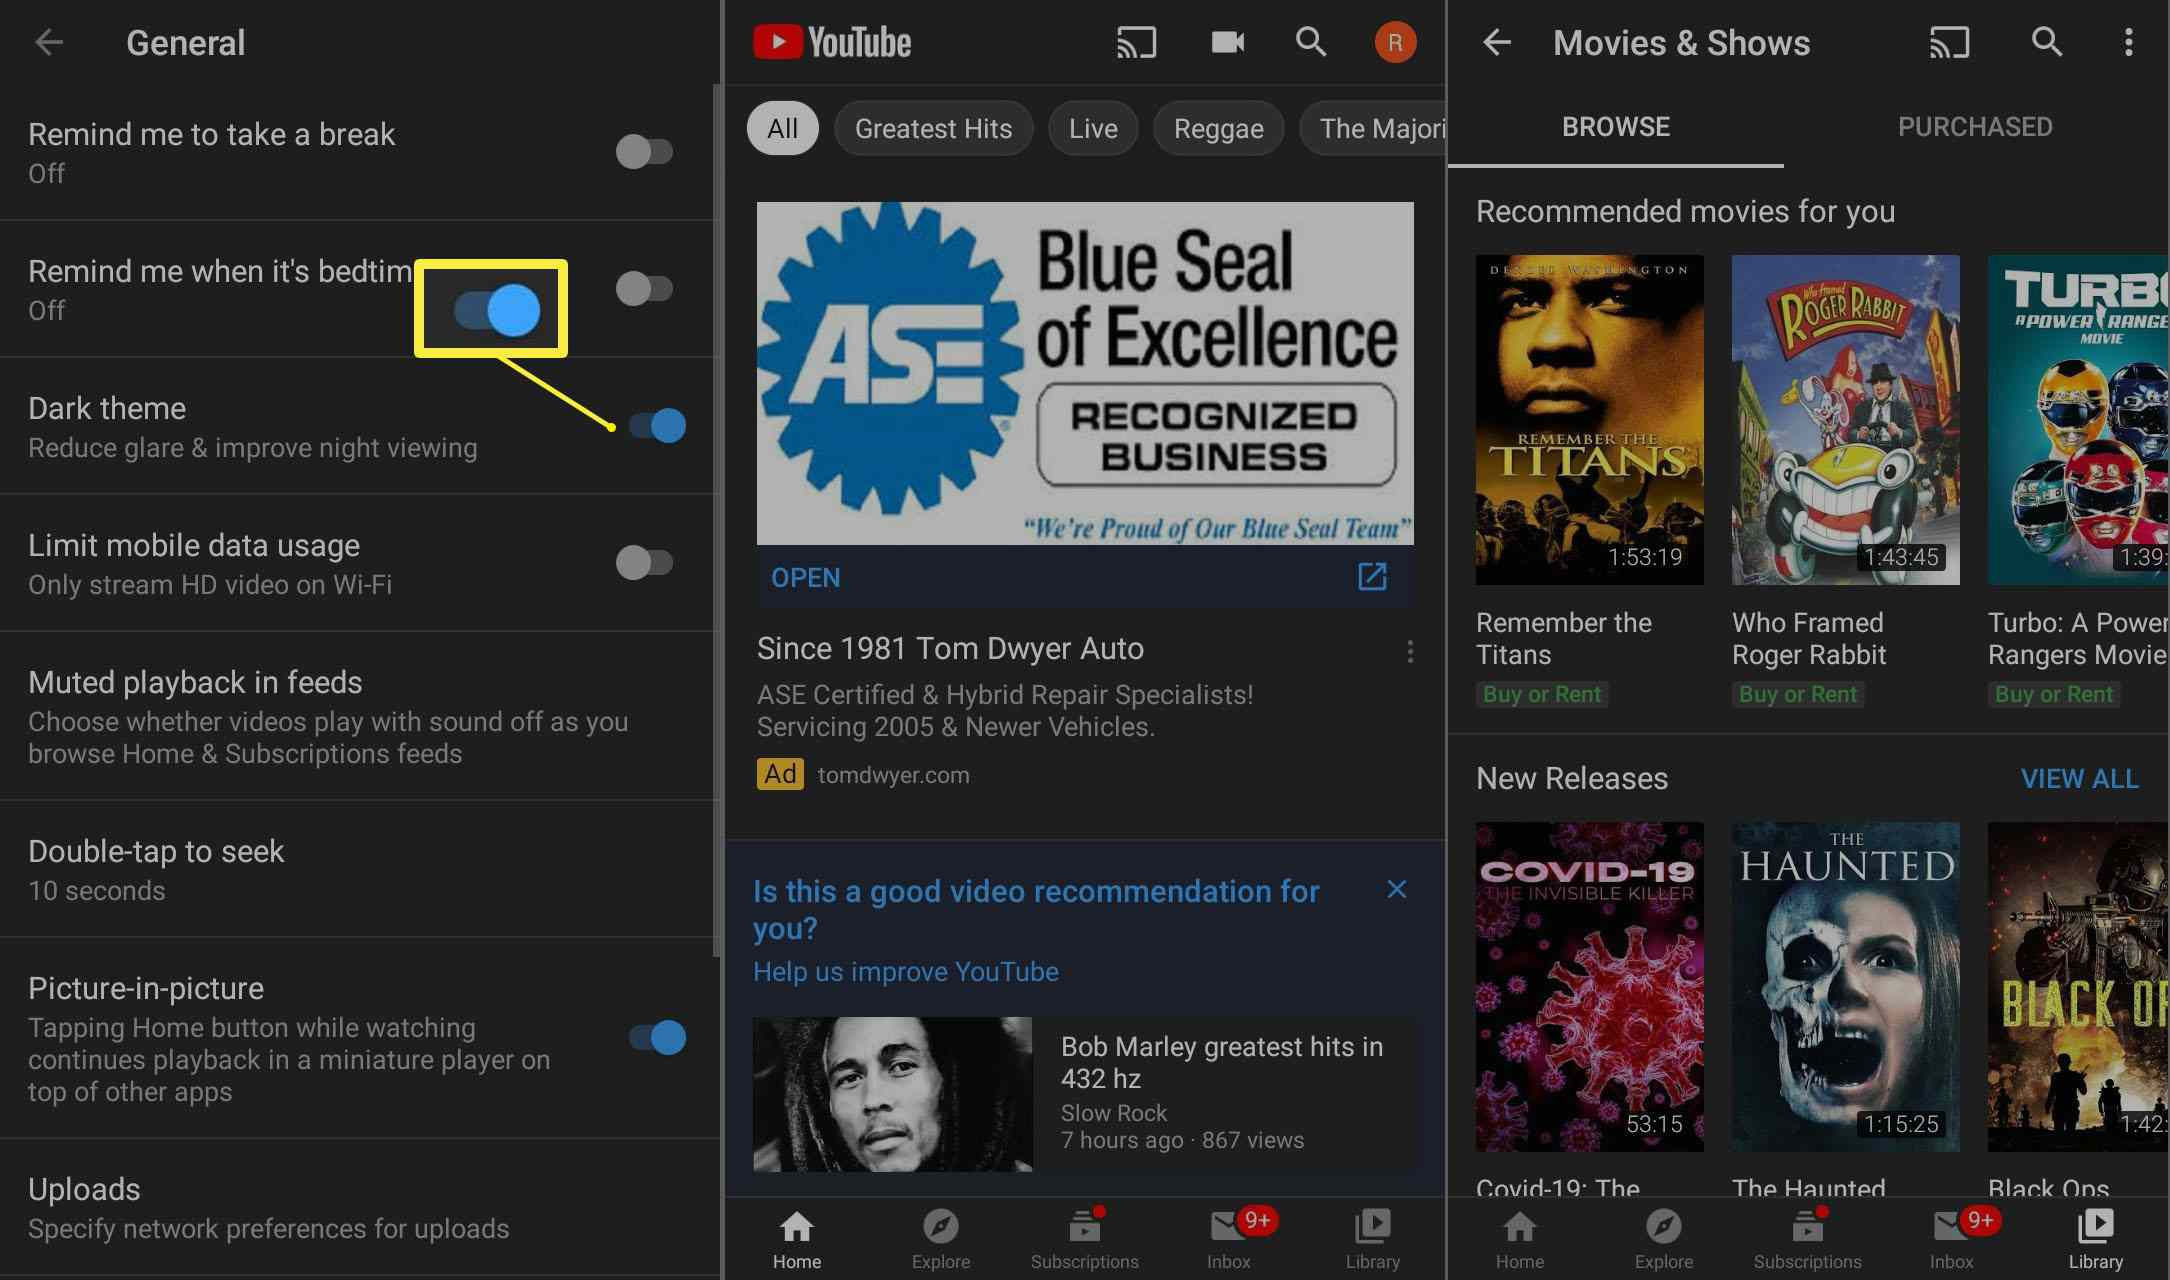 The Dark theme on YouTube for Android.